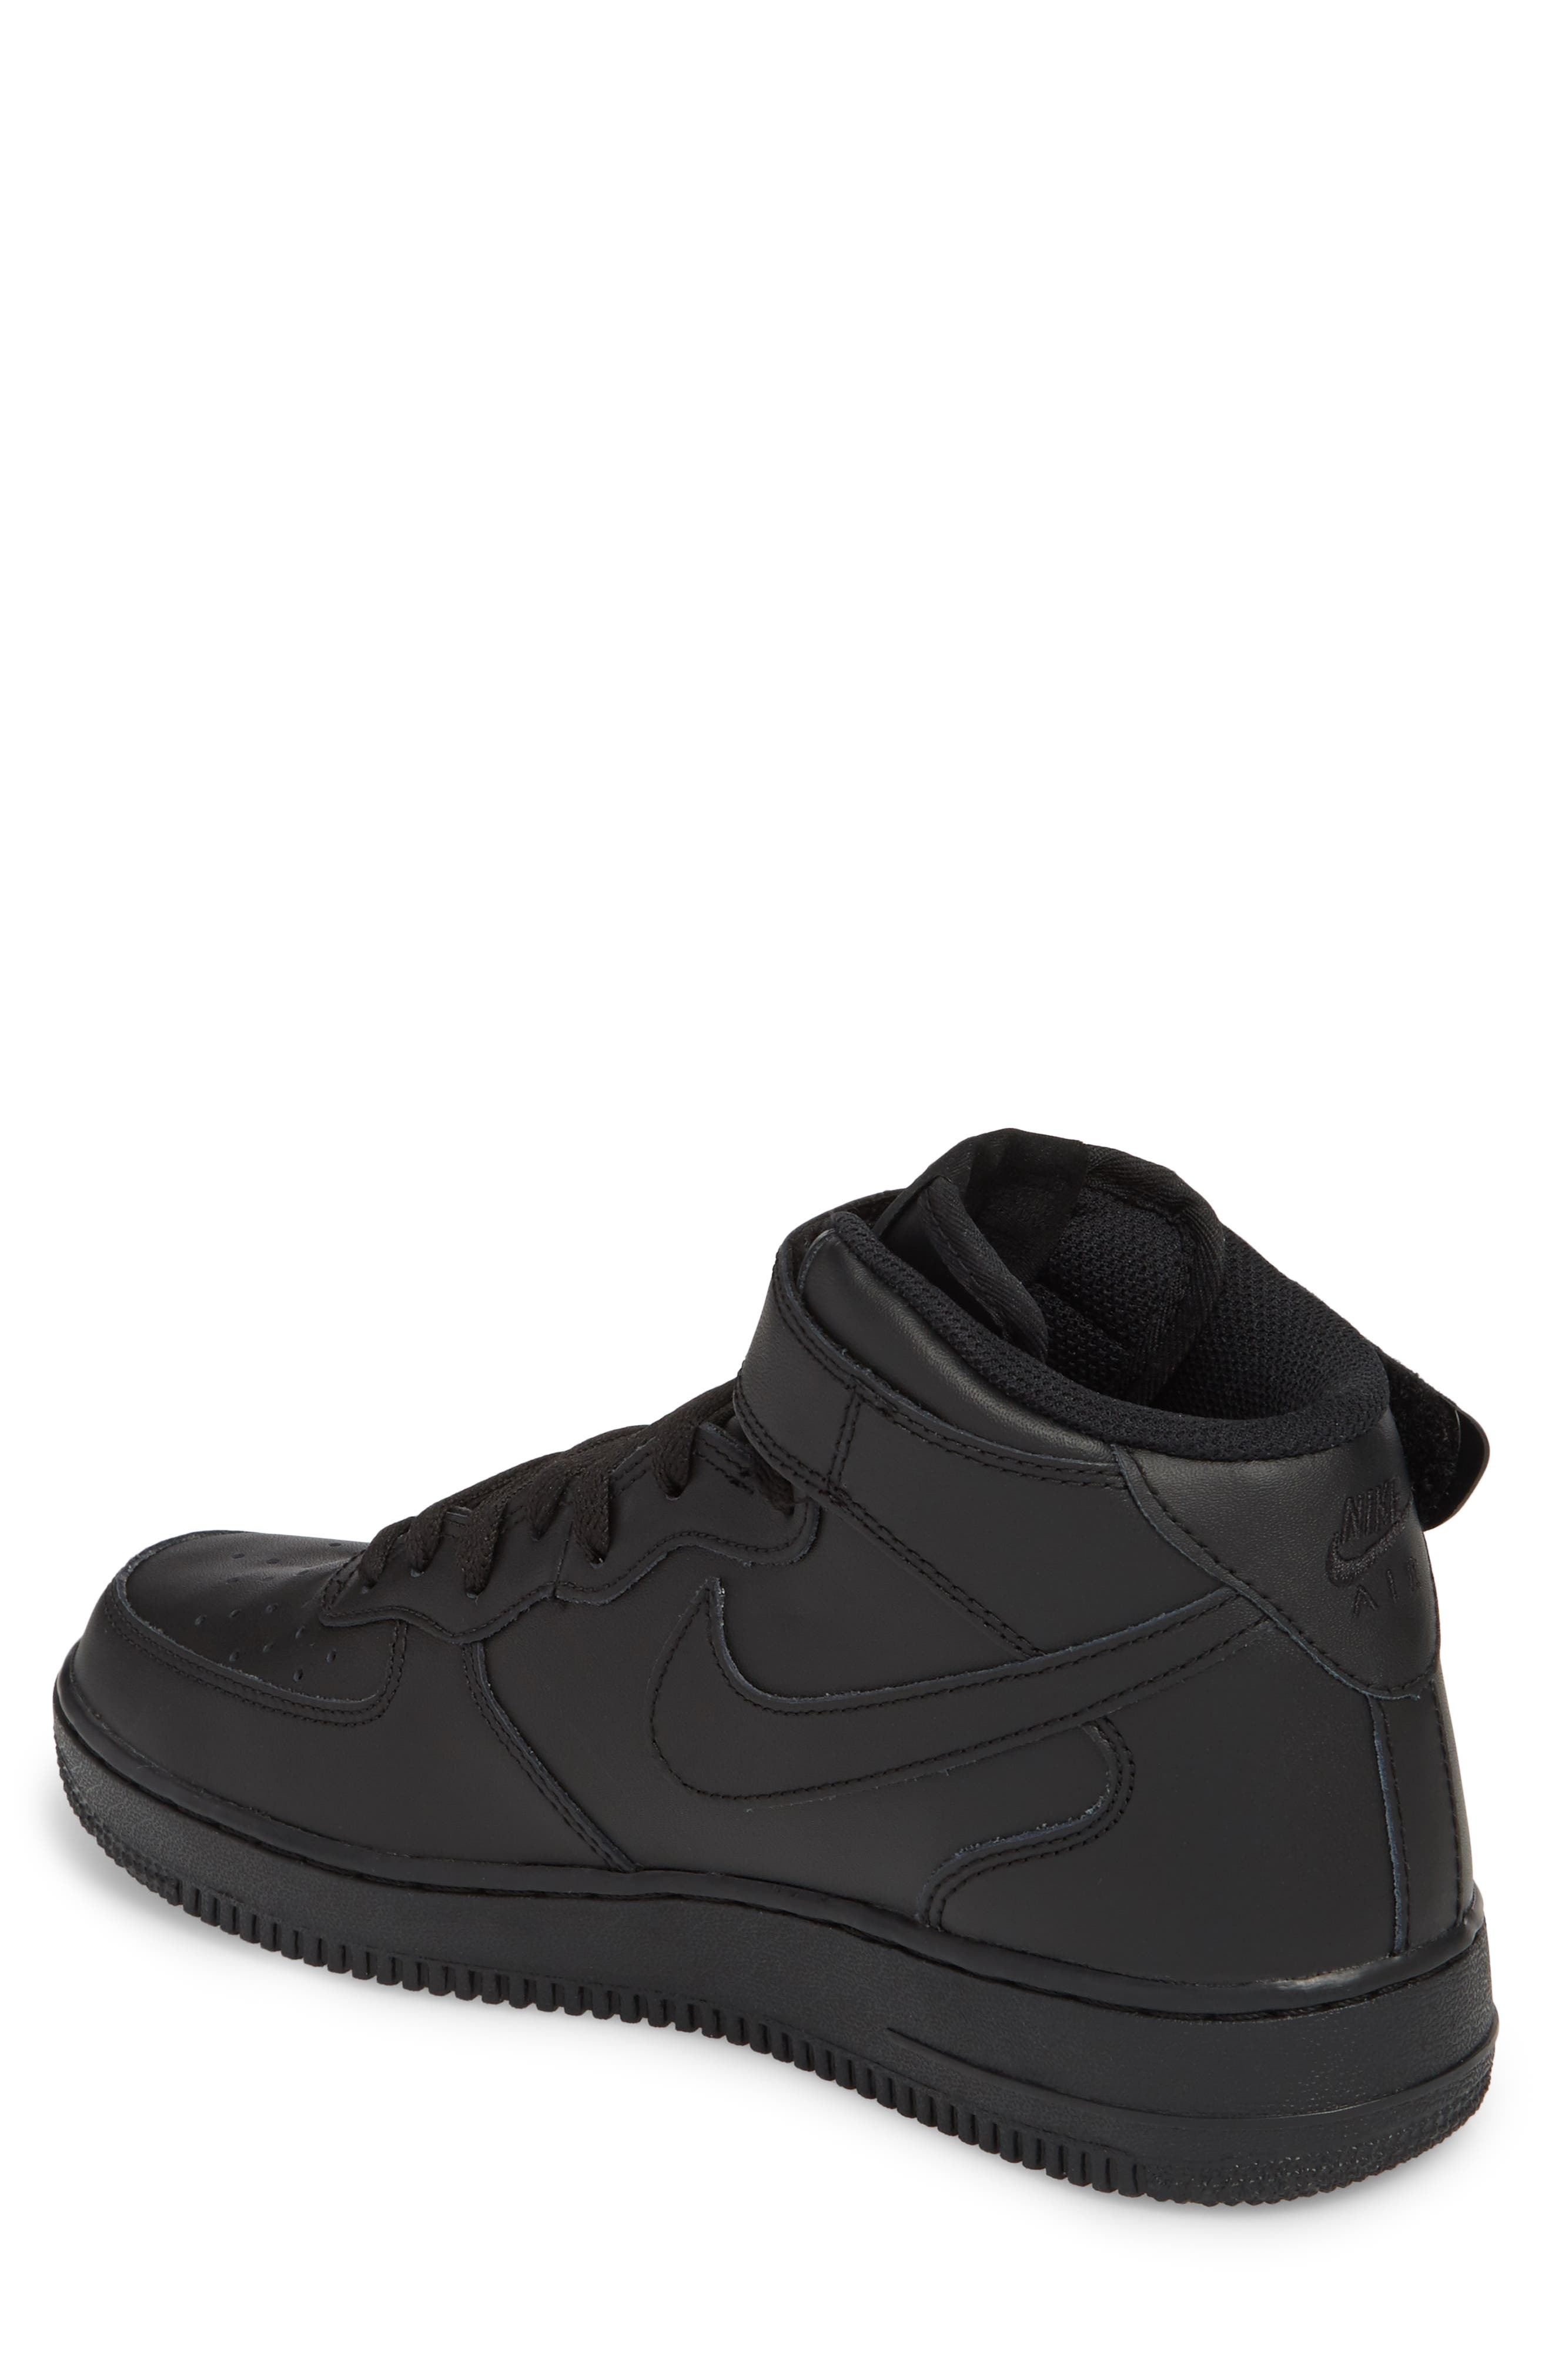 Air Force 1 Mid '07 Sneaker,                             Alternate thumbnail 2, color,                             BLACK/ BLACK